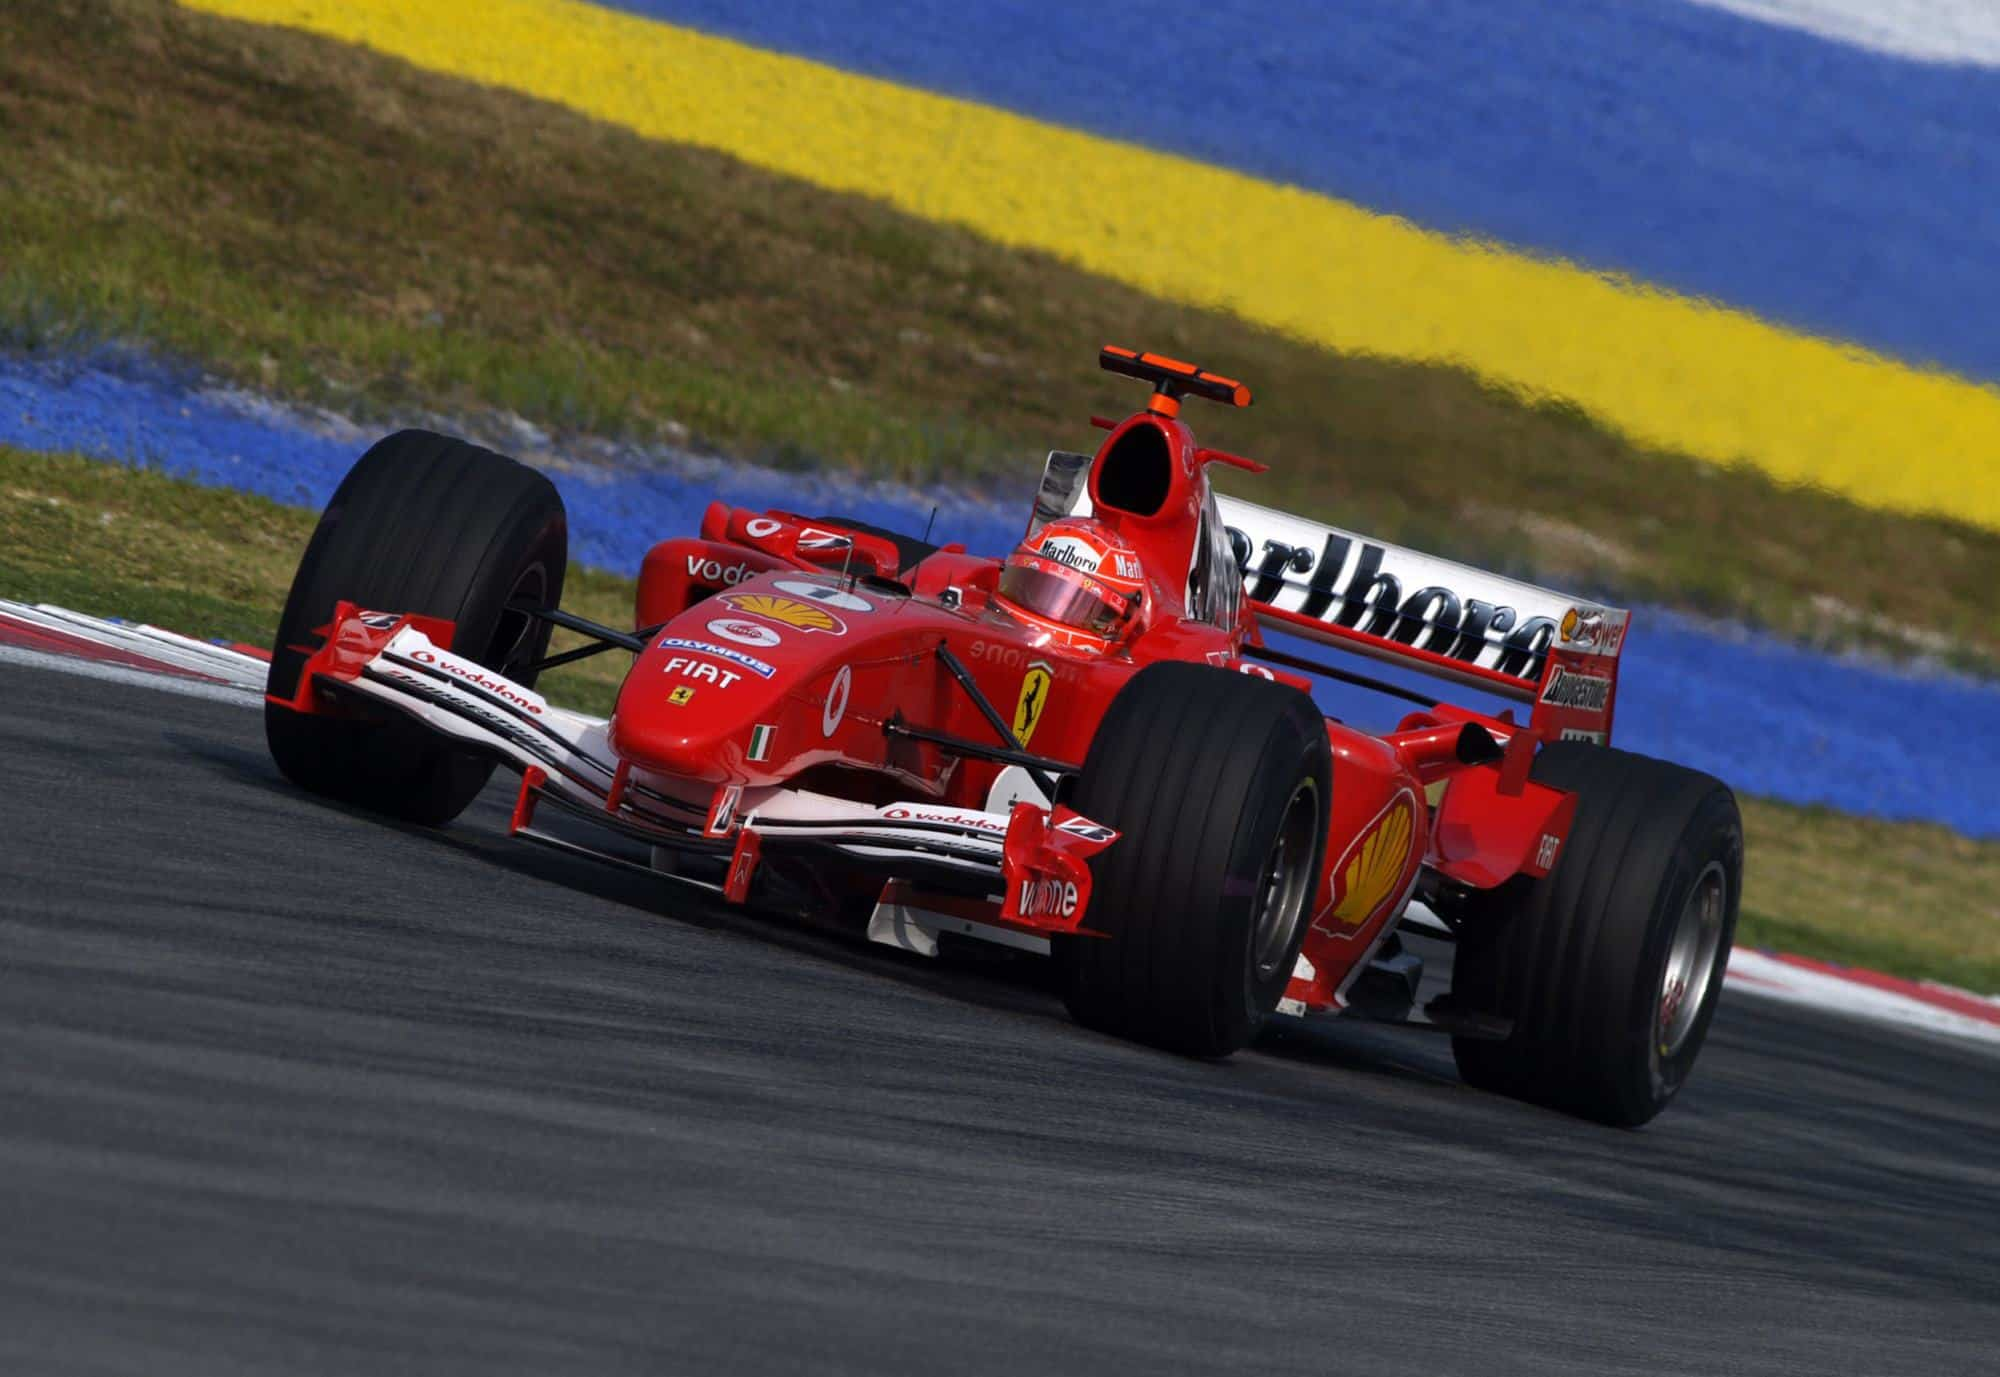 2005-Malaysian-GP-F1-Michael-Schumacher-Ferrari-F2004M-Photo-Ferrari